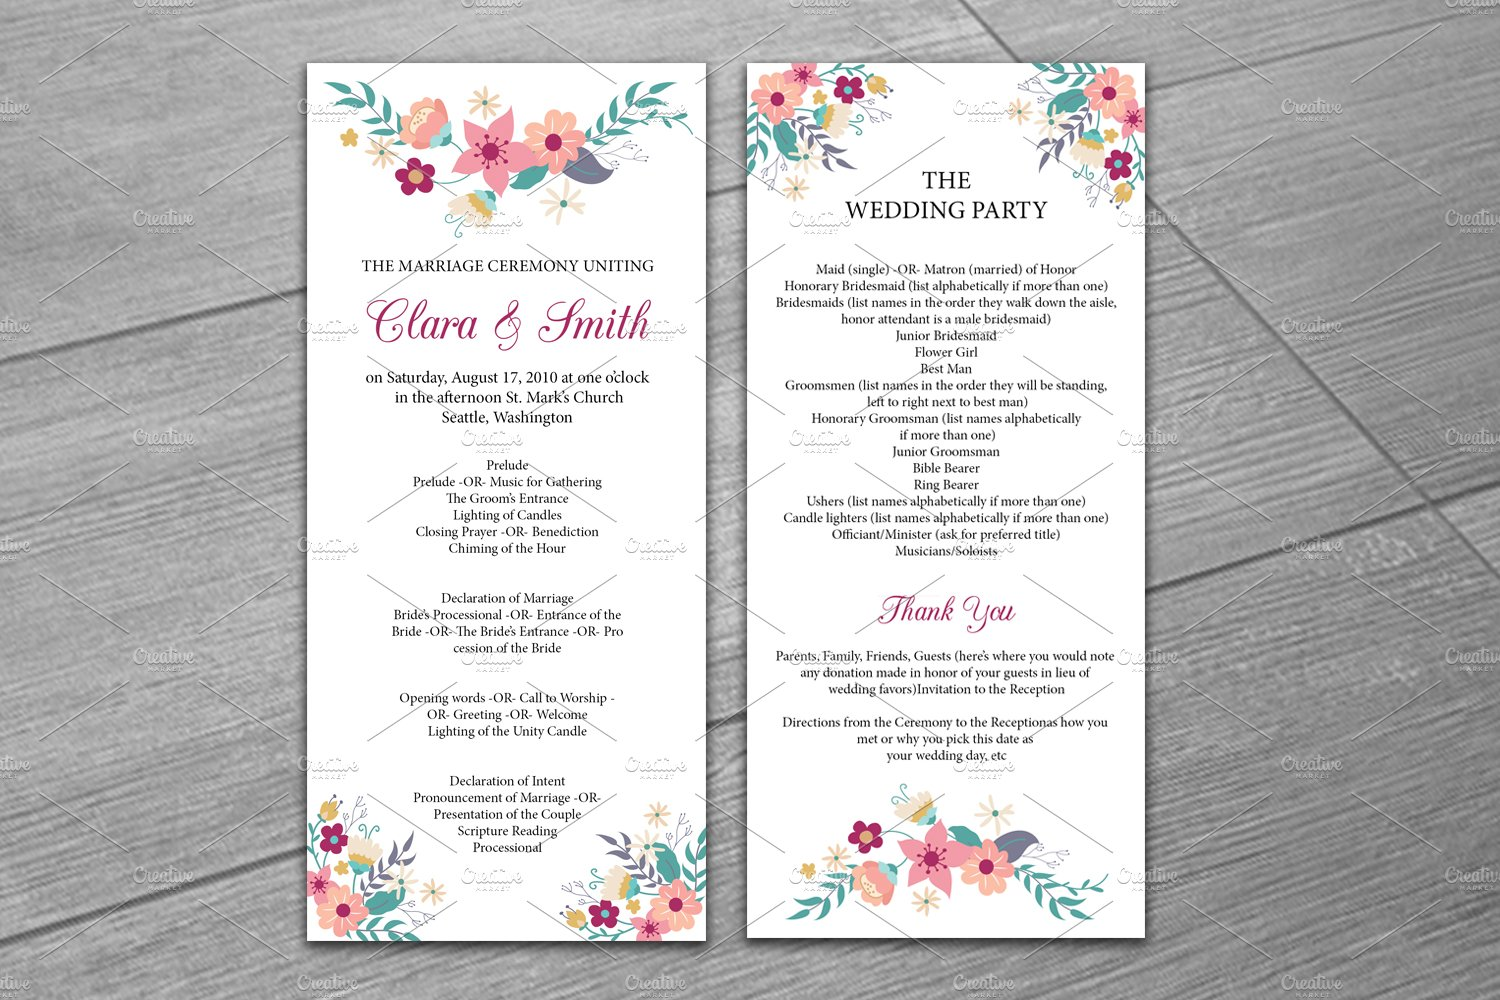 Wedding Program Template Invitation Templates Creative Market - Wedding invitation templates: wedding program template word